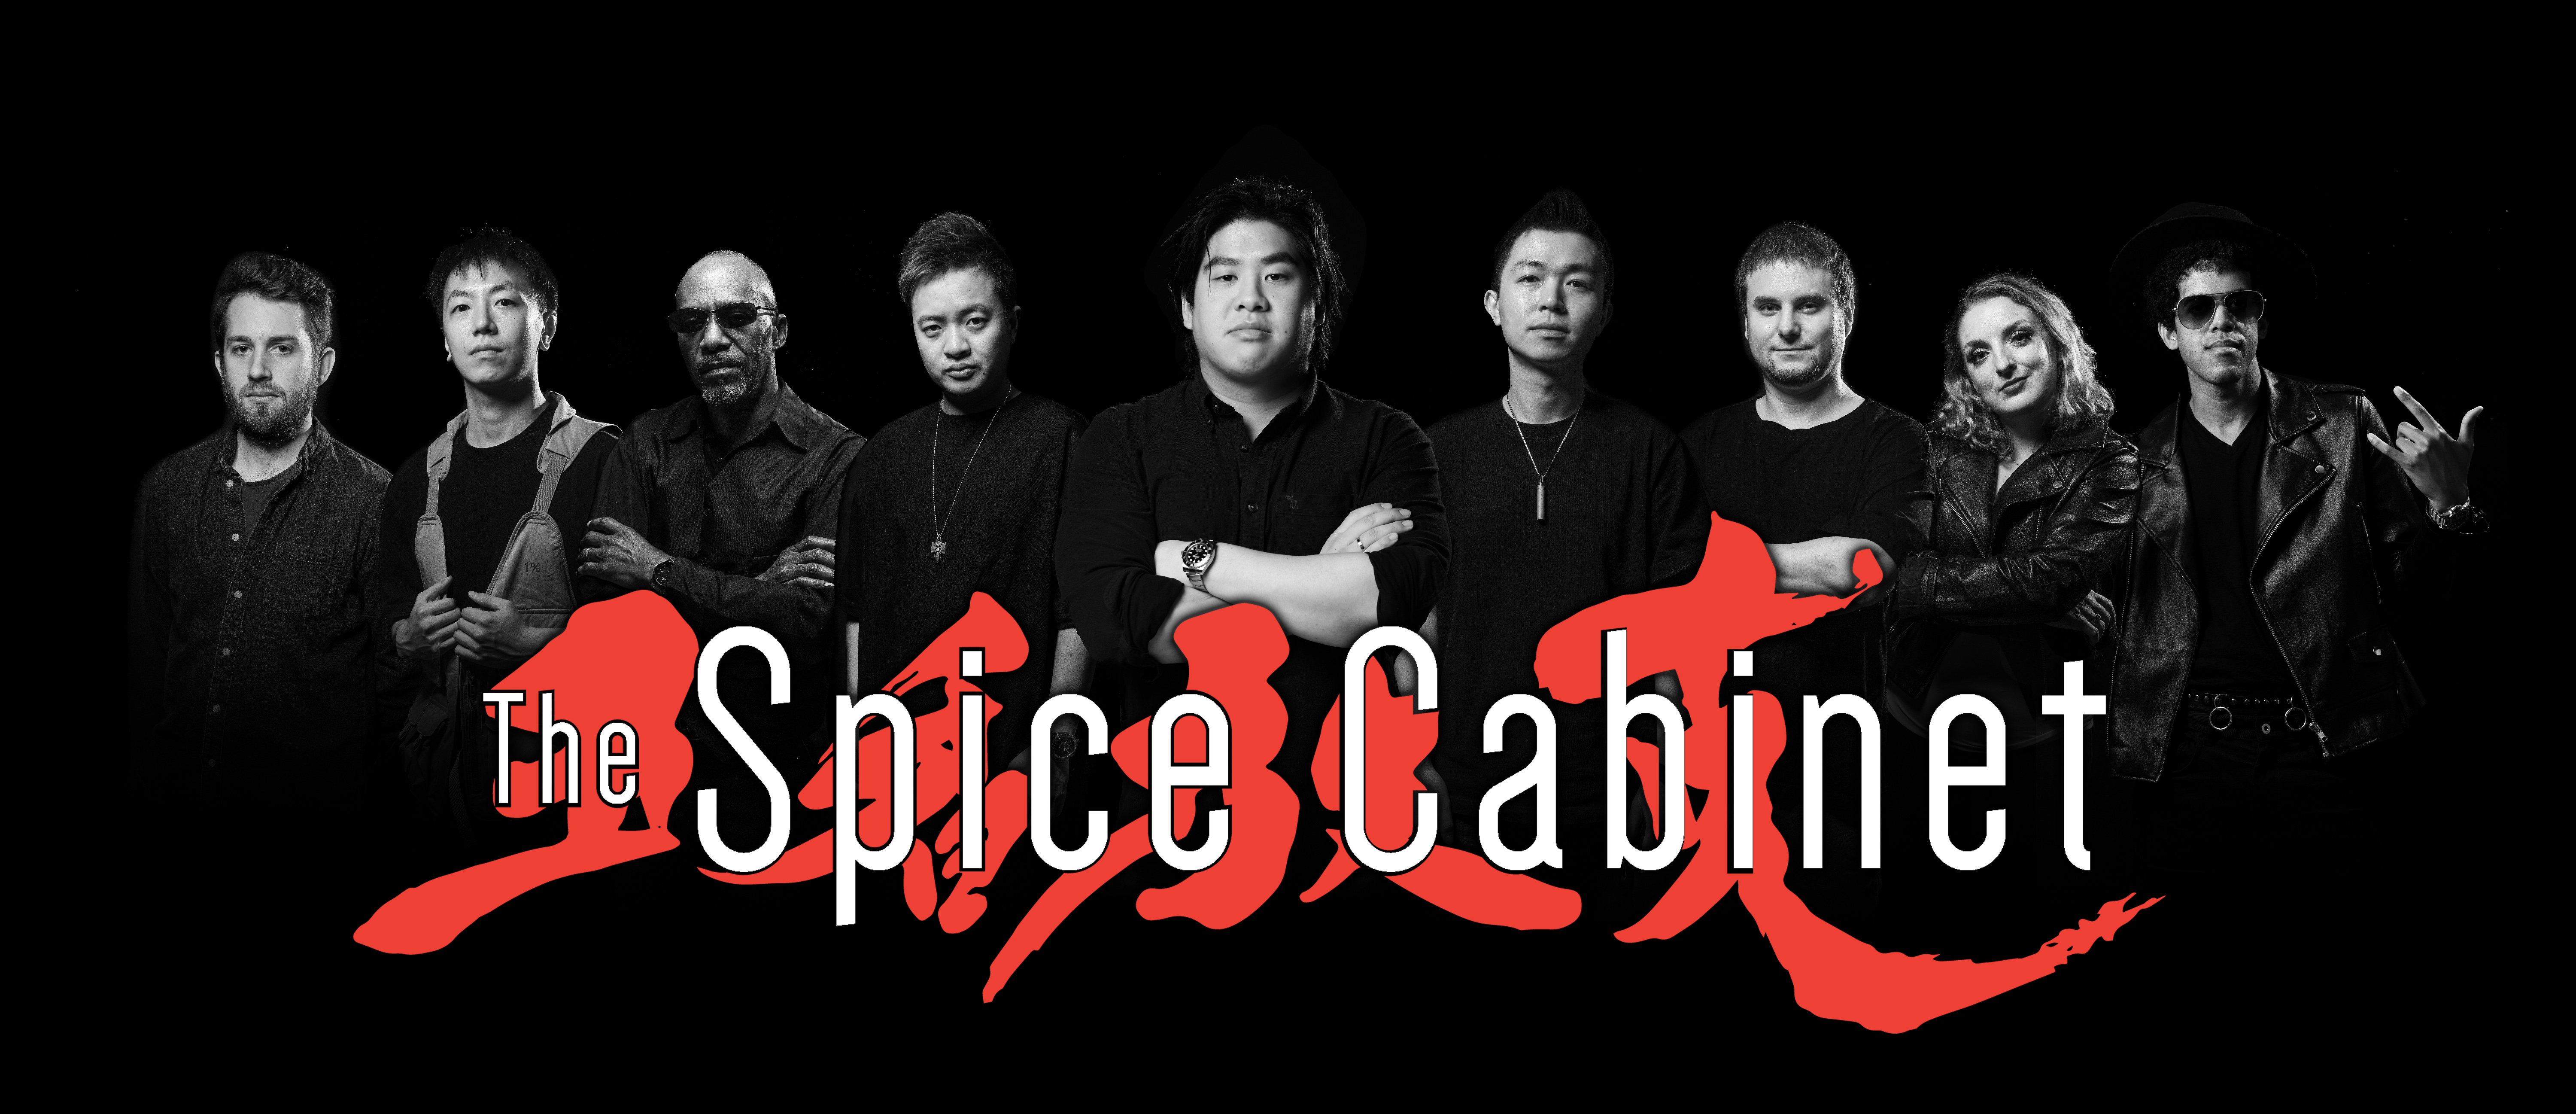 The Spice Cabinet Create an Incredibly Flavorful Musical Dish Fit for a King With Their New LP